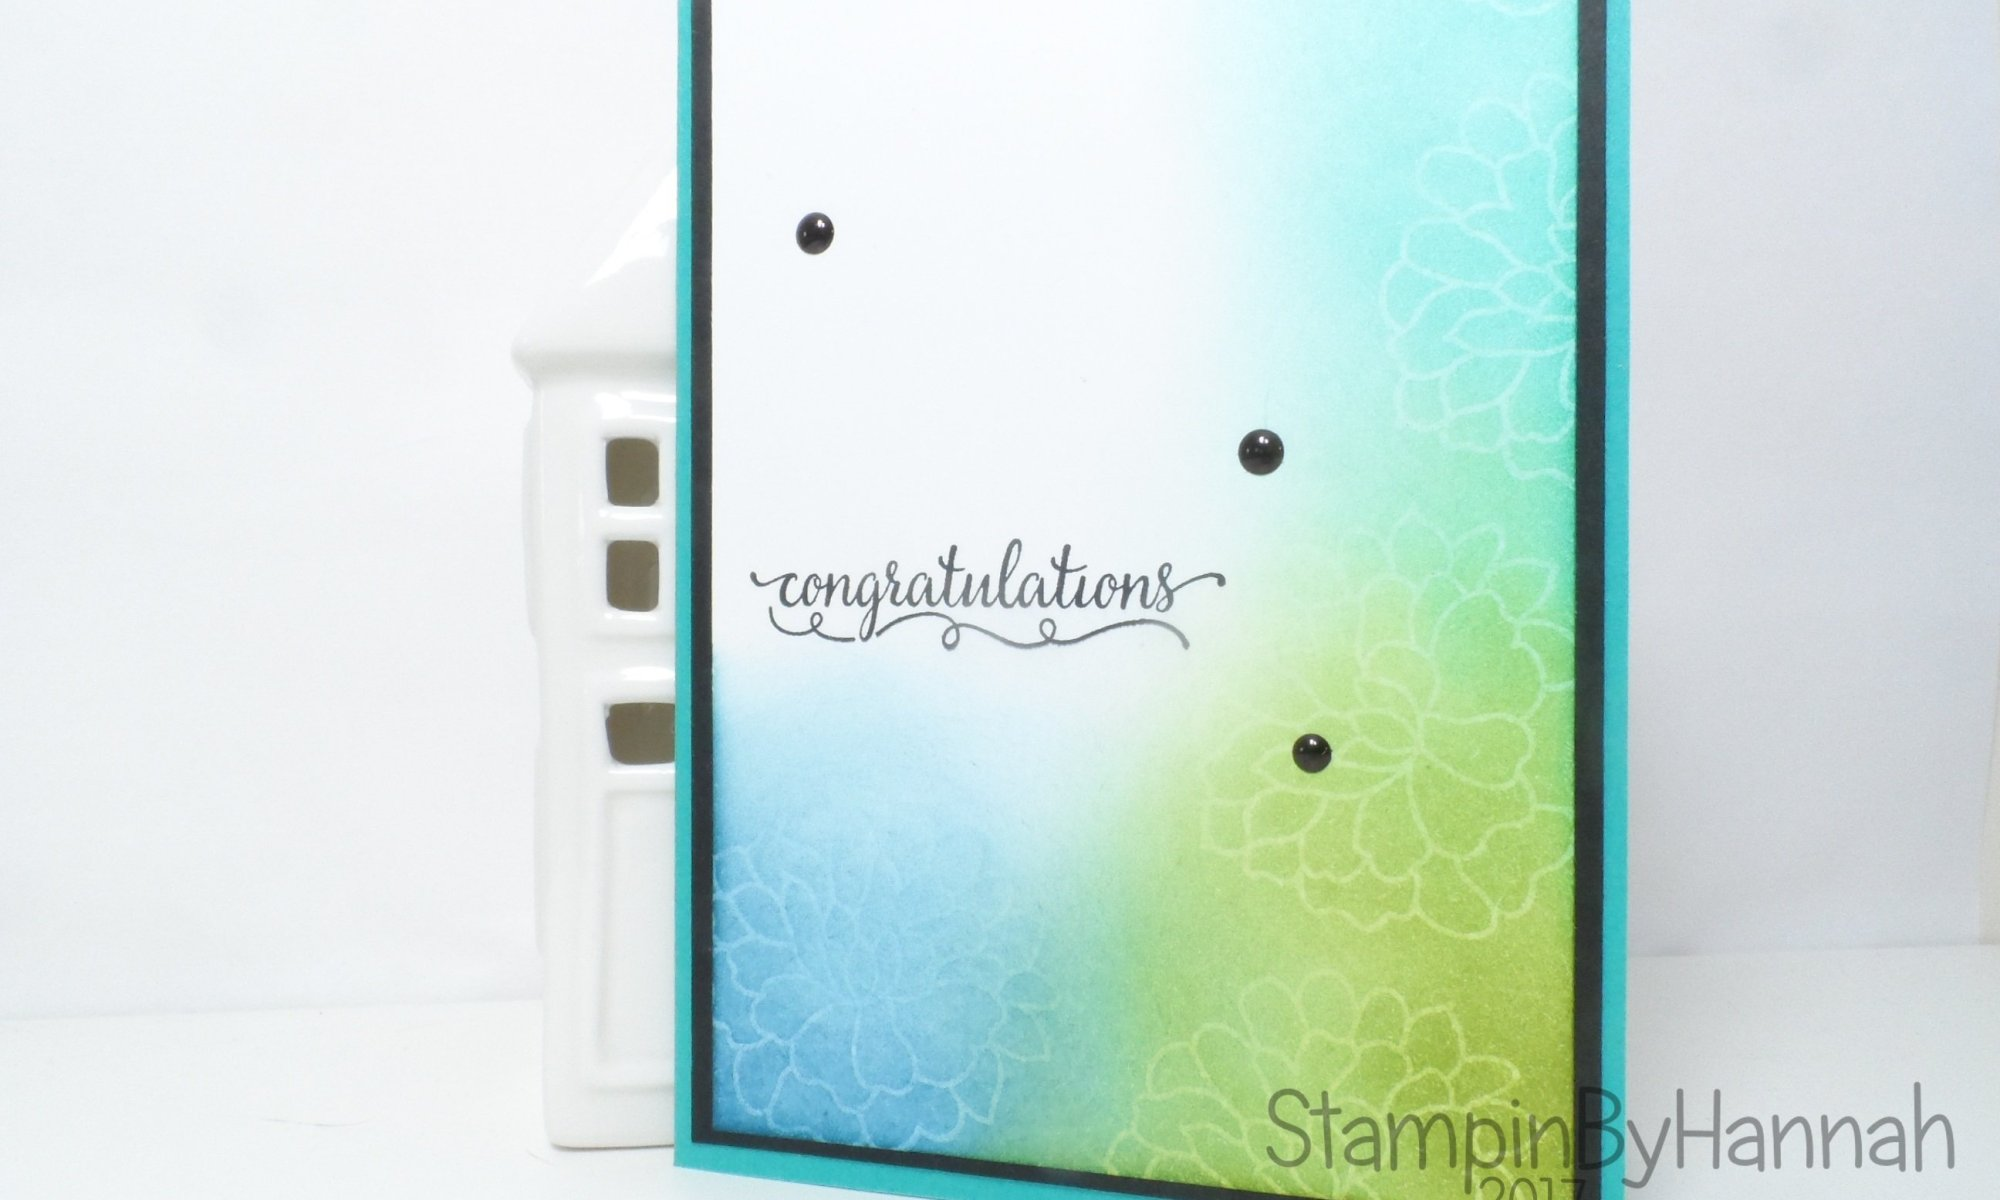 Love Hearts Week Distress Resist video tutorial using So In Love from Stampin' Up! UK